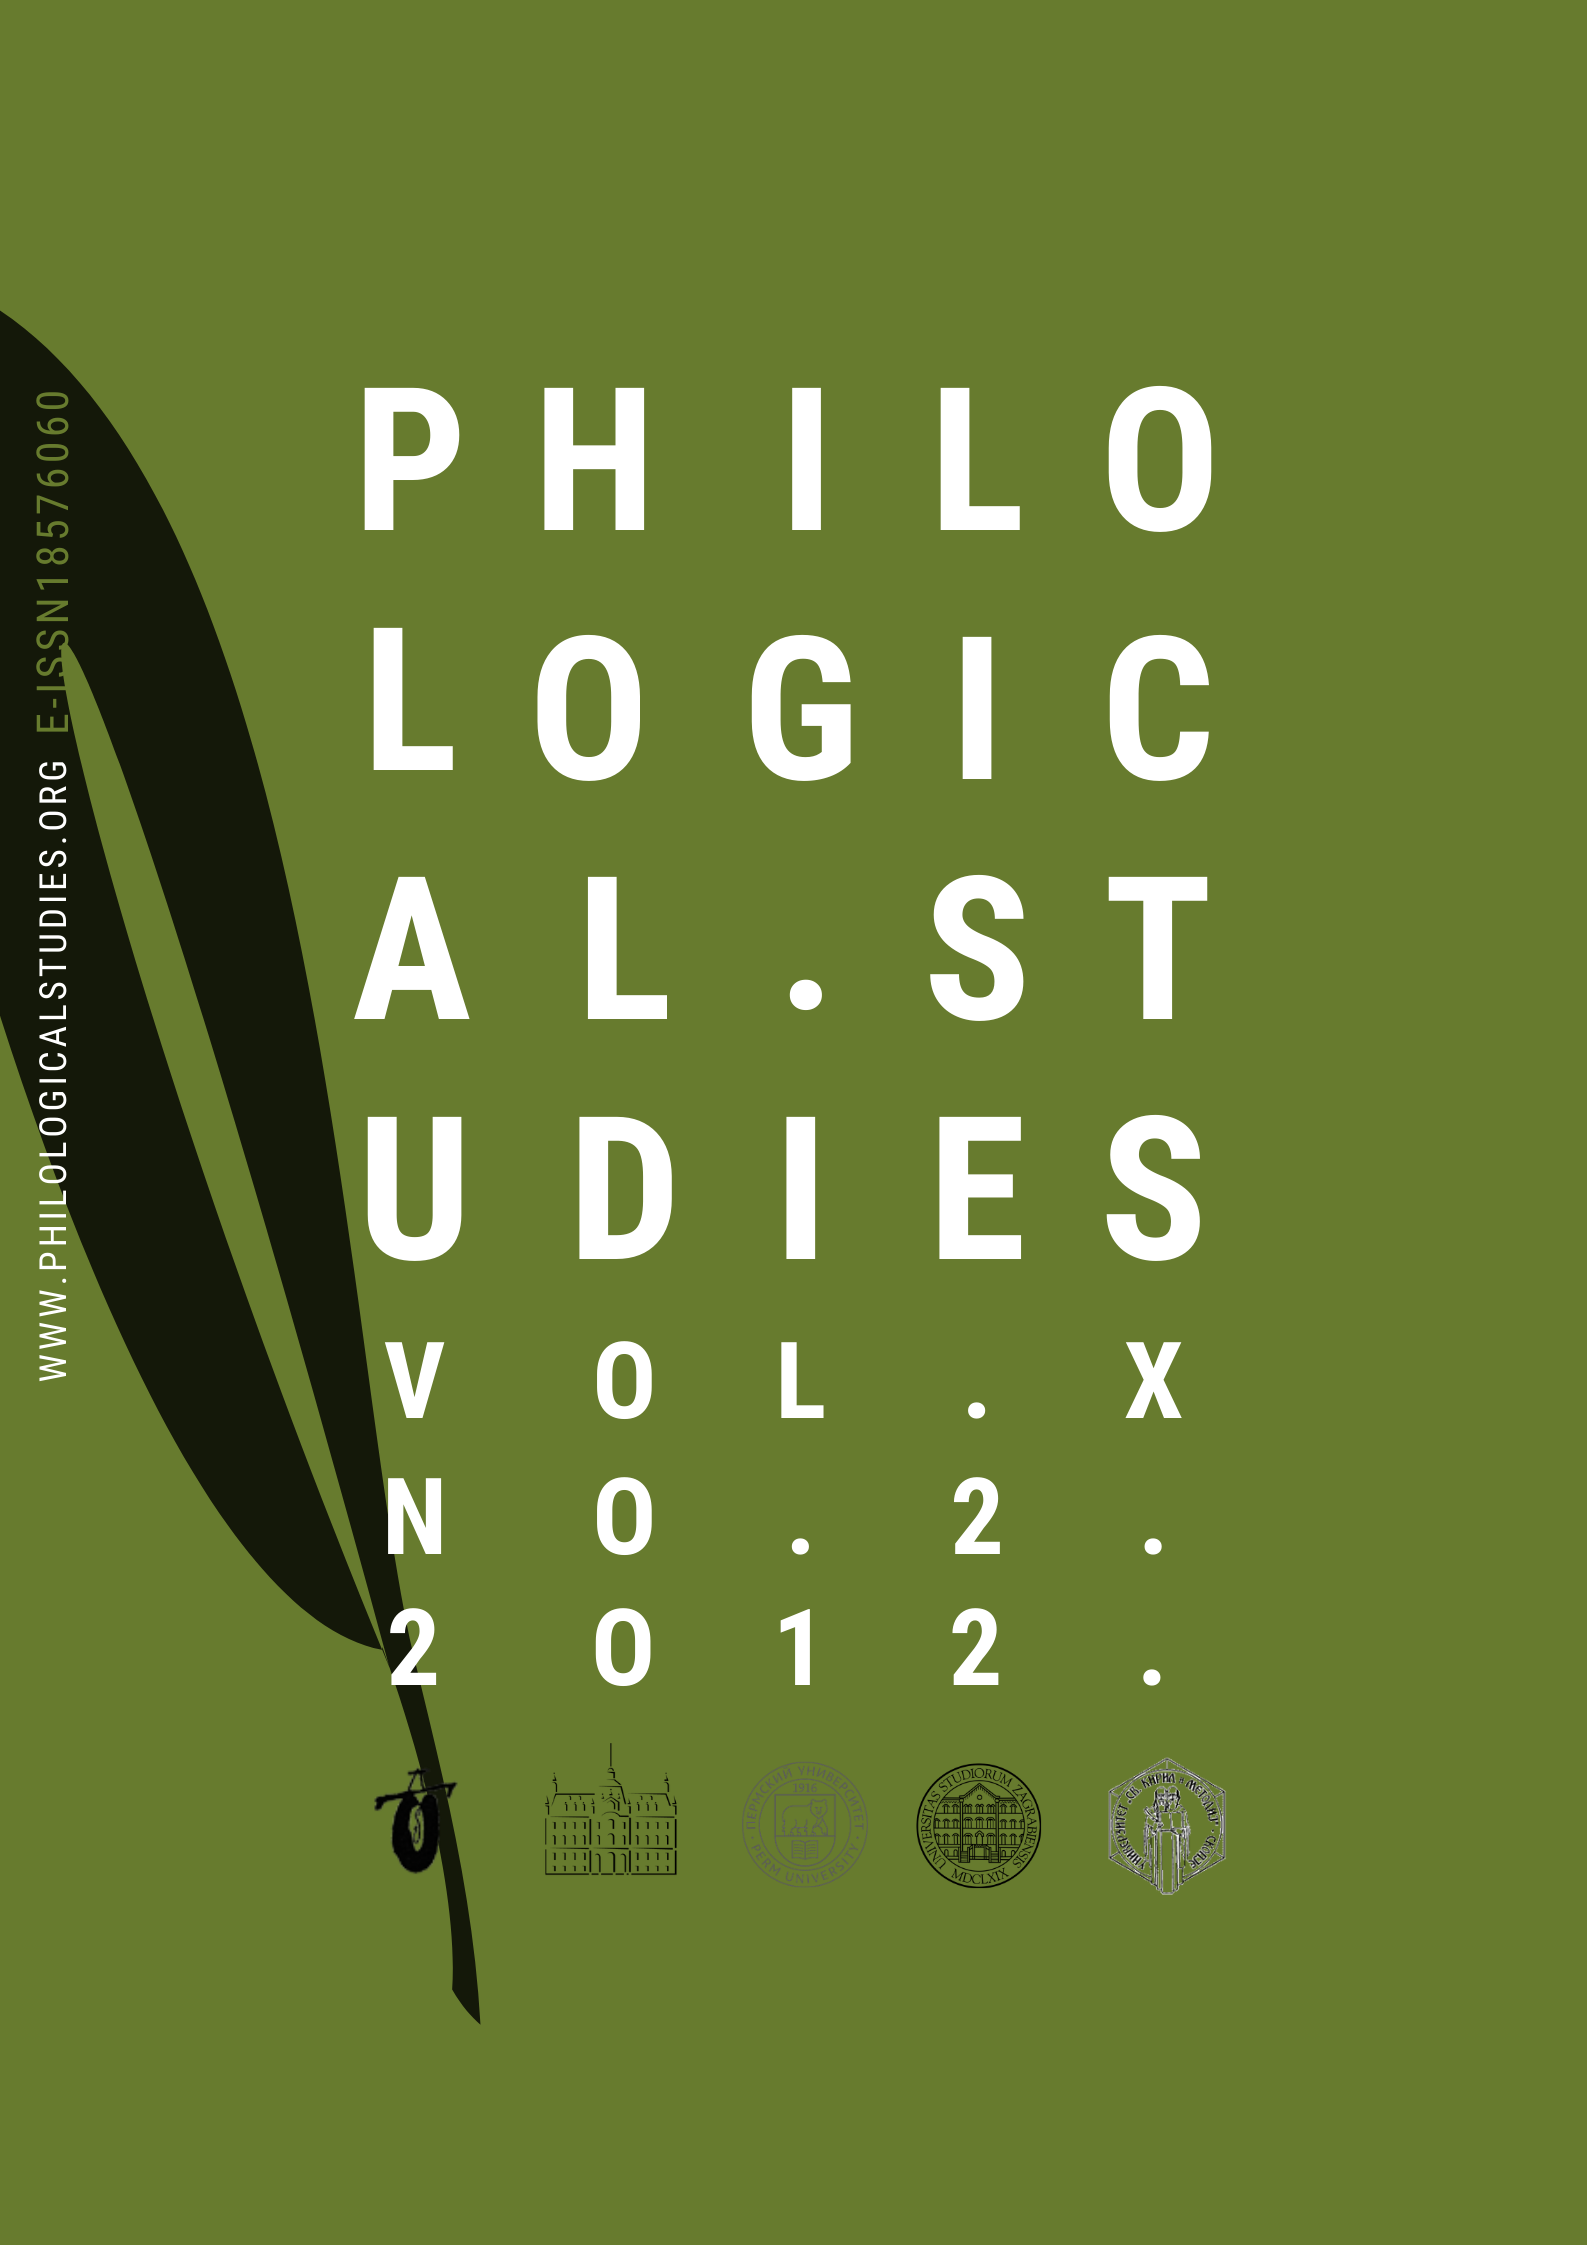 Philological Studies Vol.10 No.2 2012